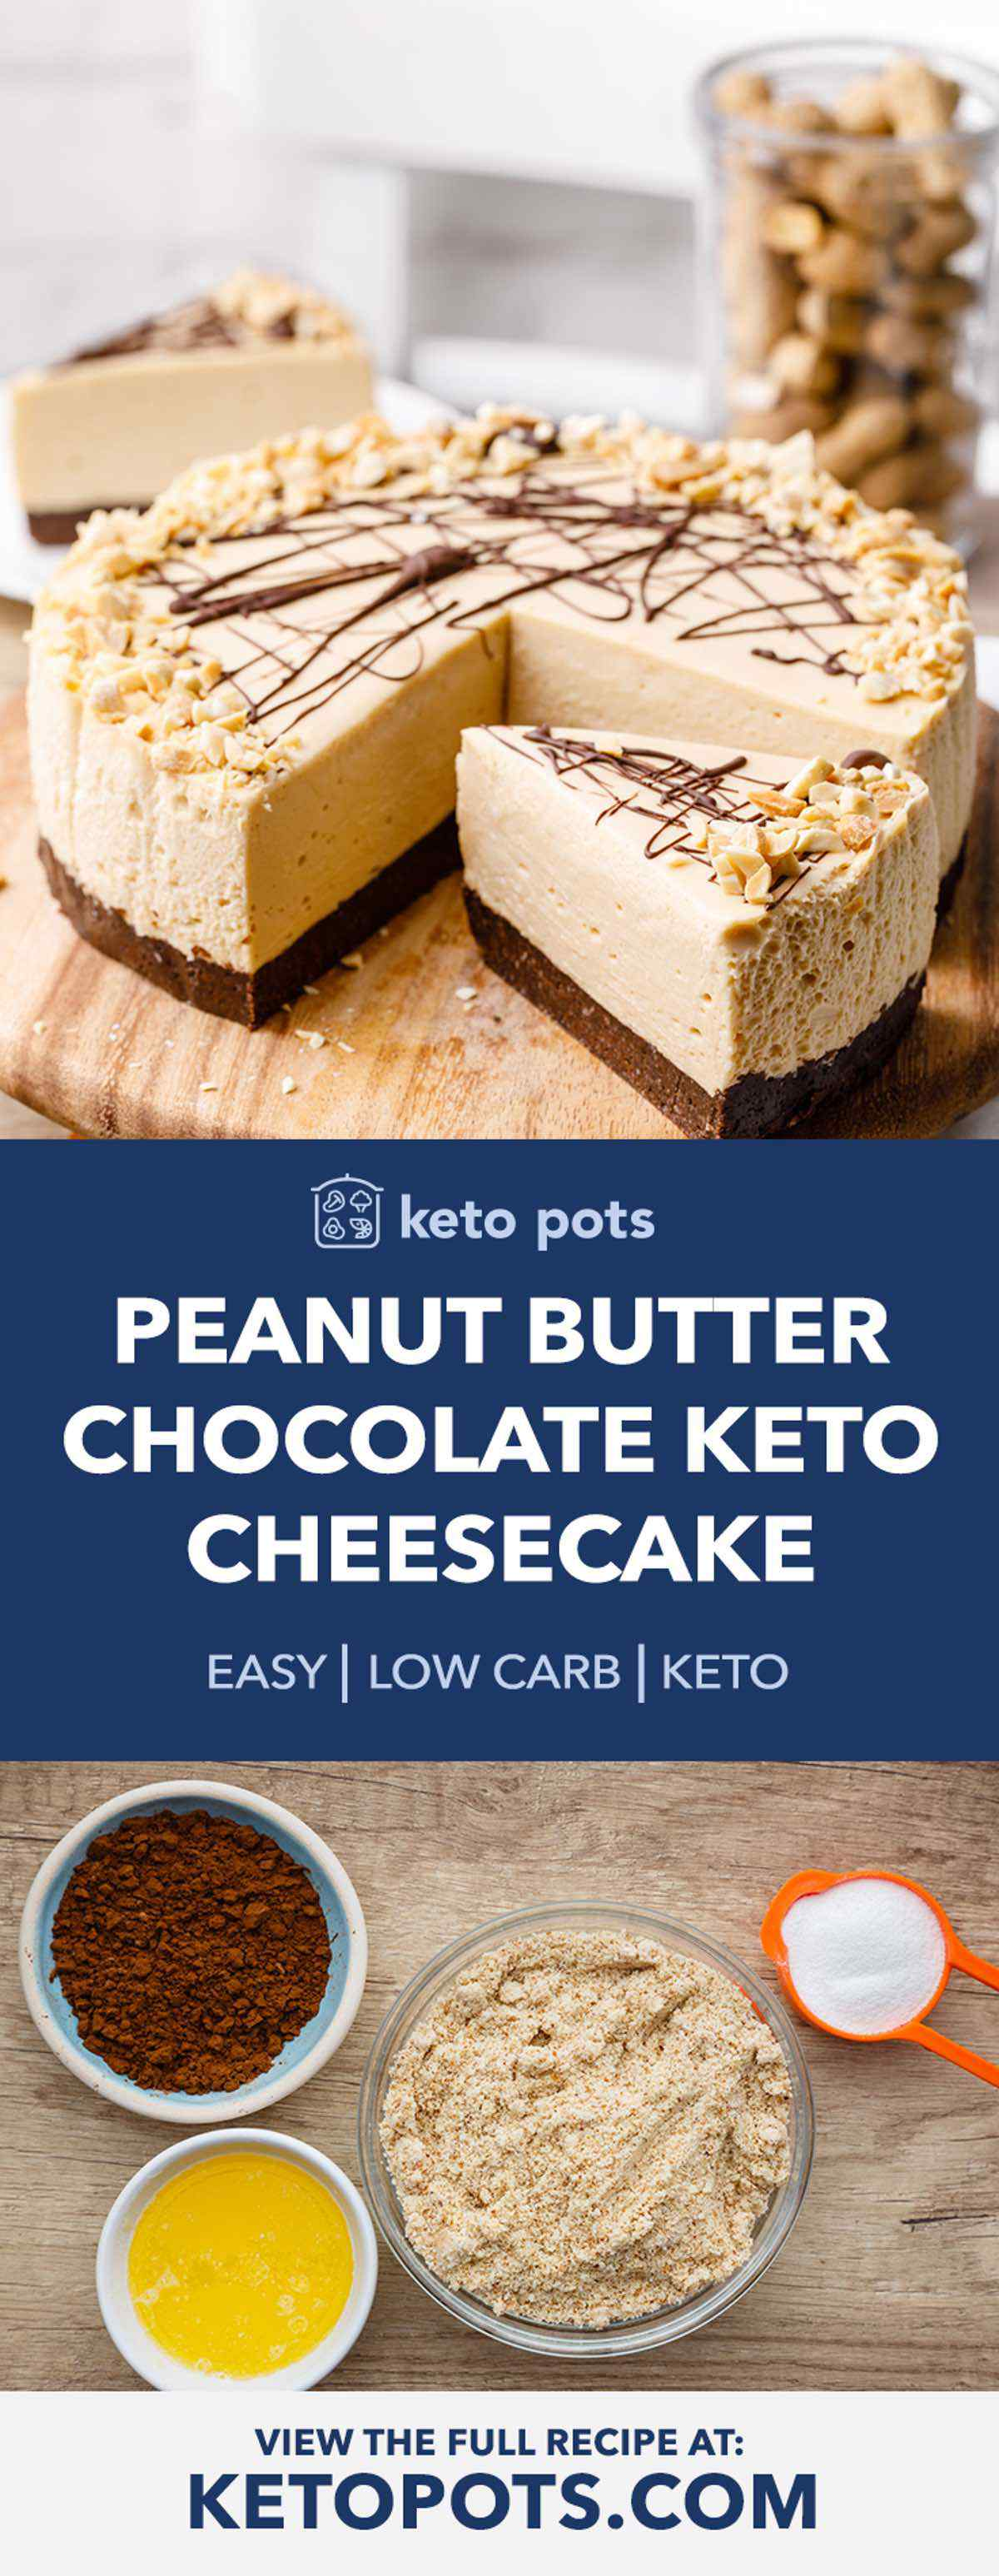 No Bake Peanut Butter and Chocolate Keto Cheesecake